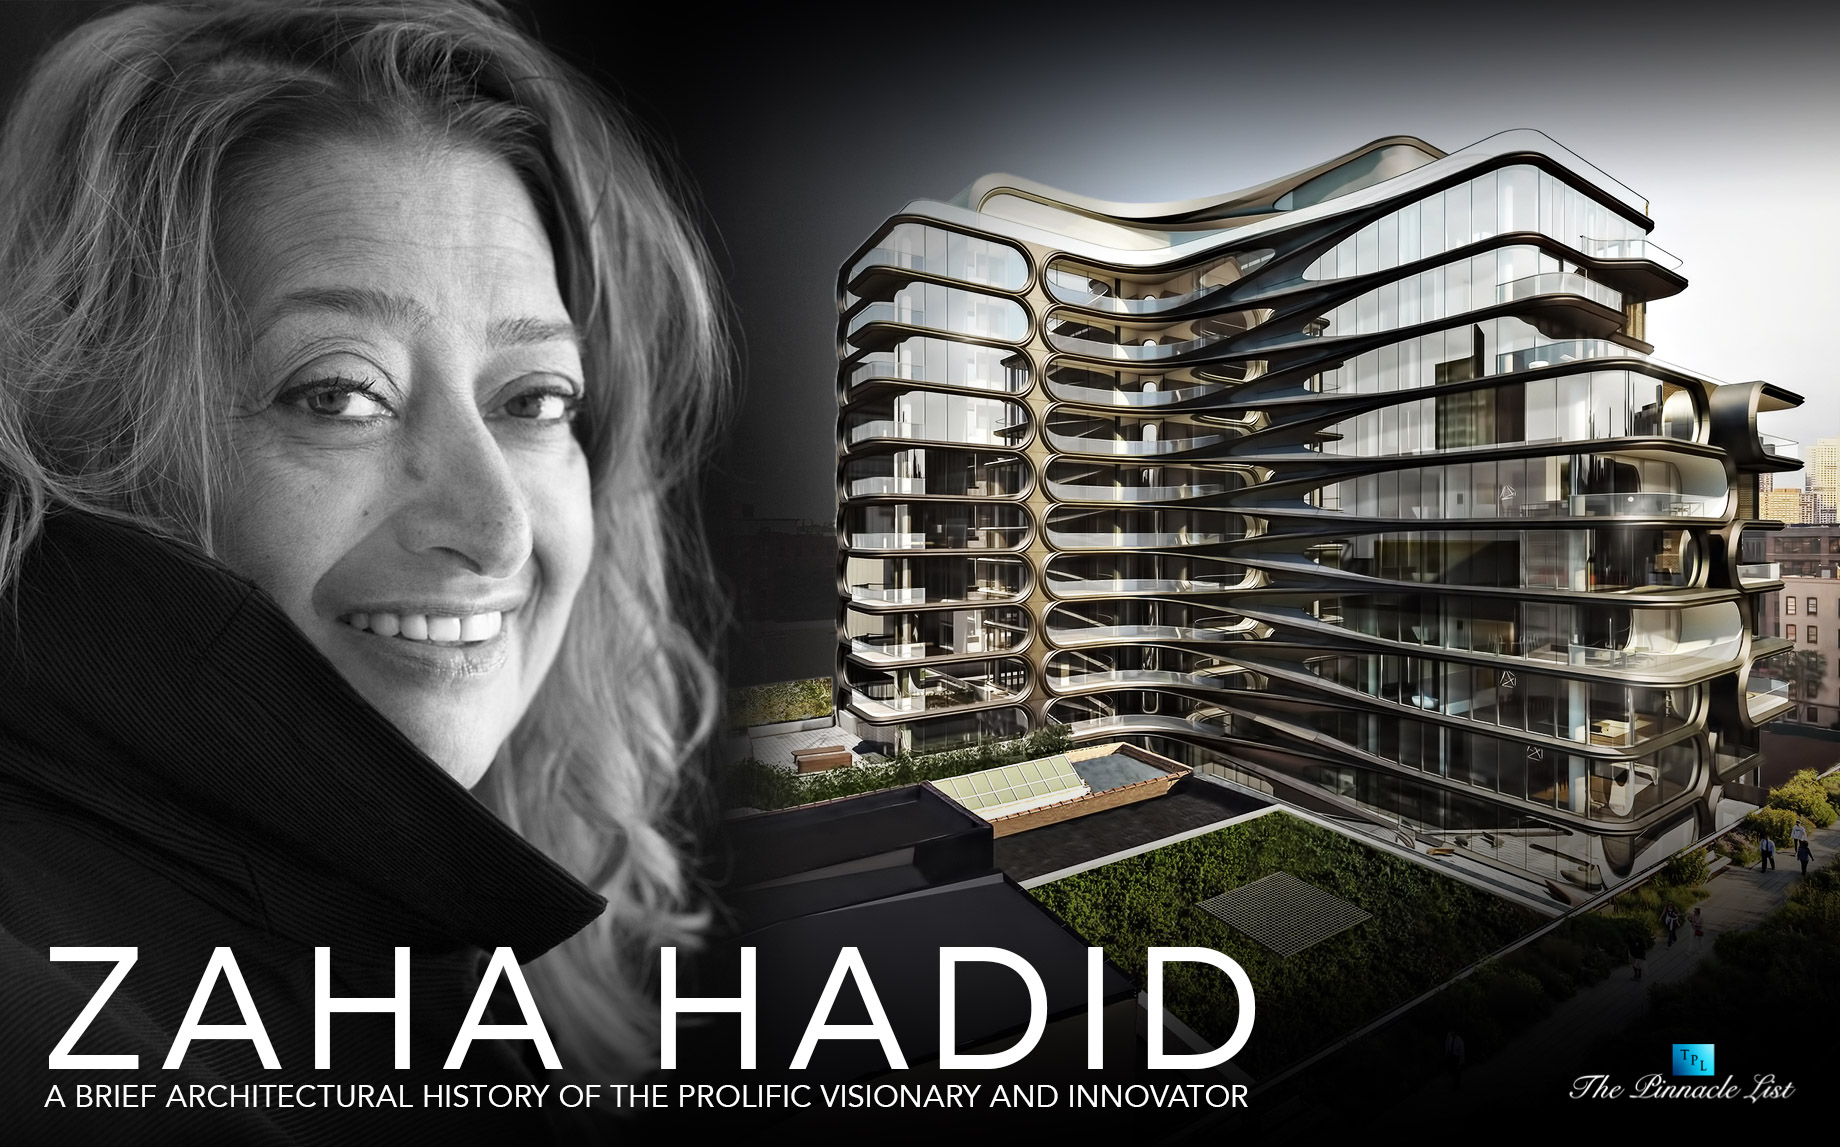 Zaha Hadid - A Brief Architectural History of the Prolific Visionary and Innovator